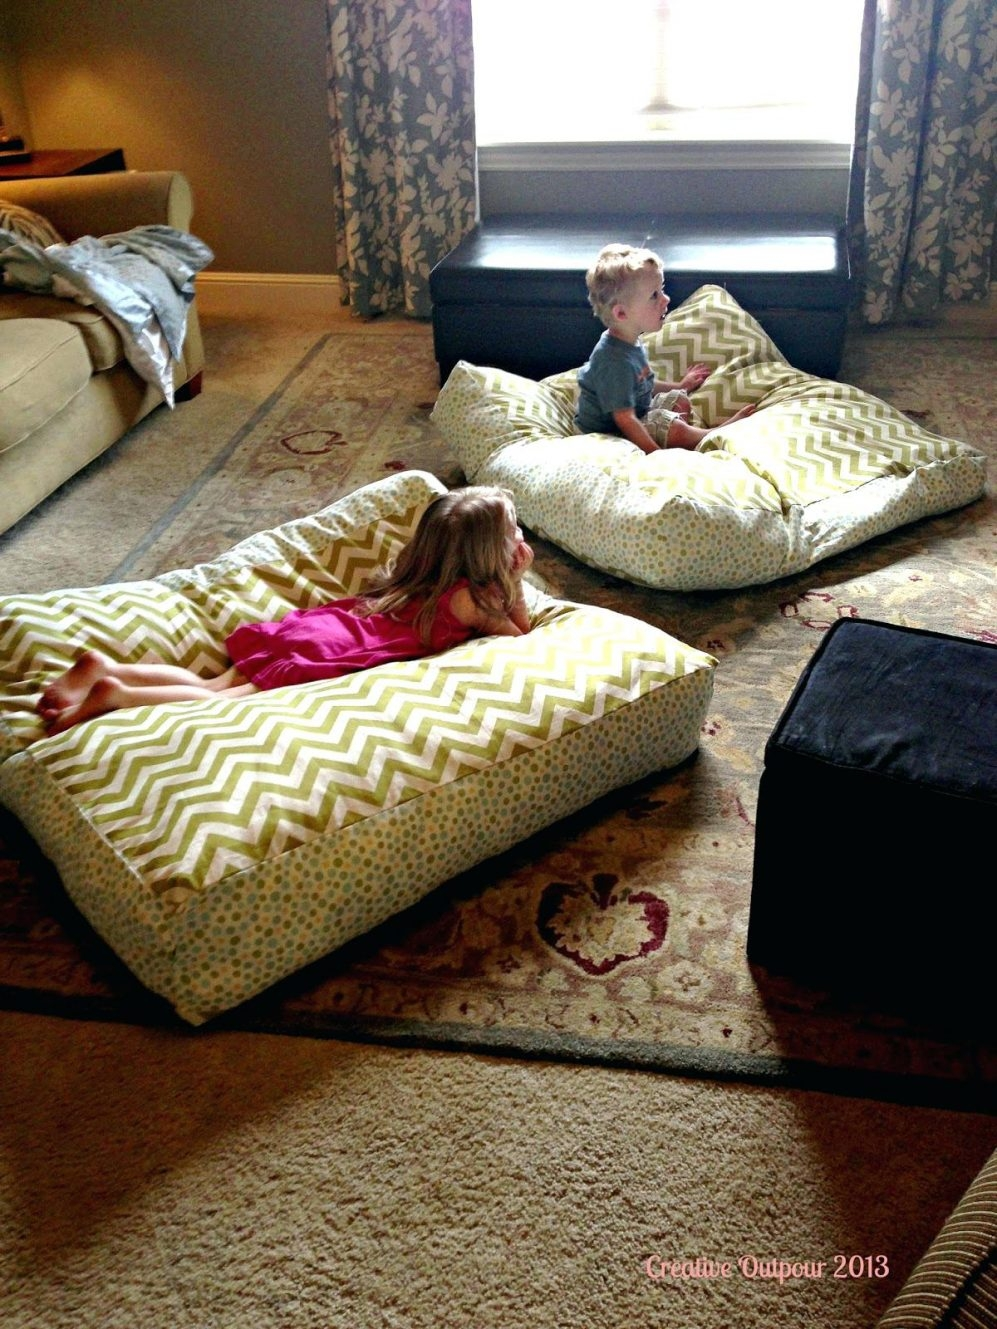 15 photos moroccan floor seating cushions sofa ideas for Floor cushion seating ideas